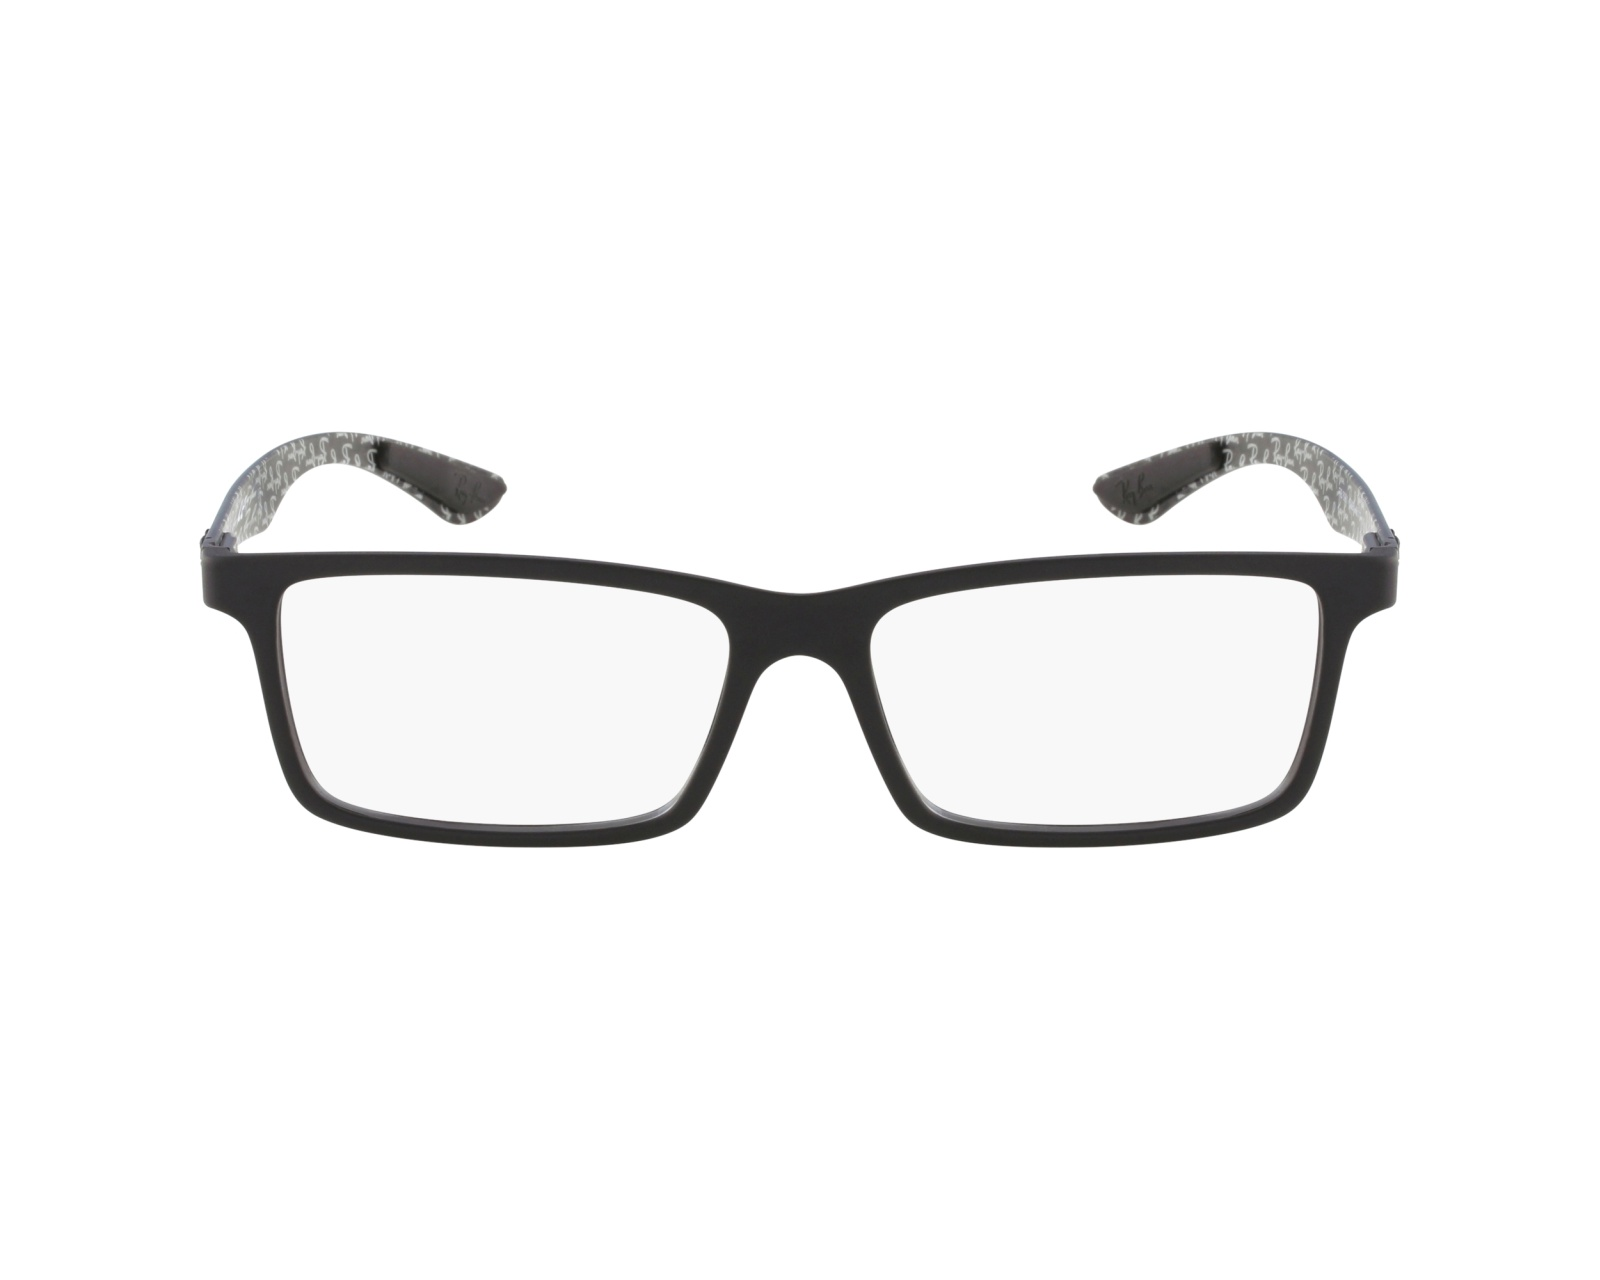 6cae2a4eac eyeglasses Ray-Ban RX-8901 5263 53-17 Black profile view